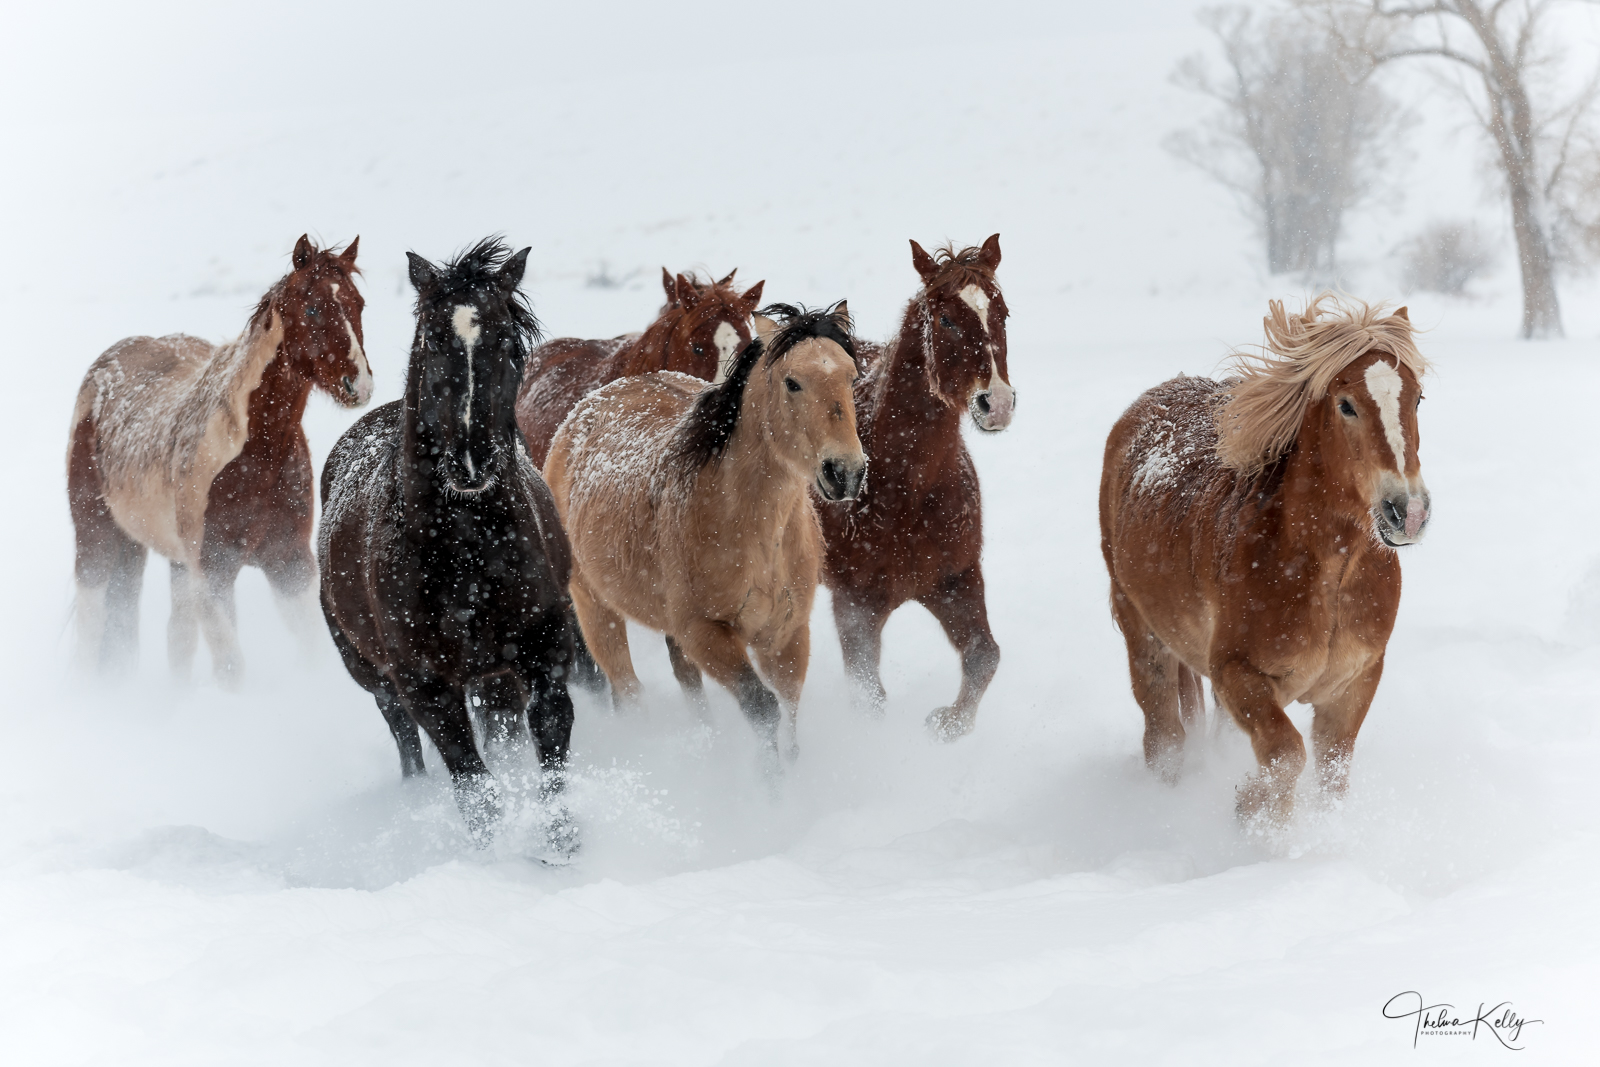 These horses are having the time of their lives racing through fresh powder!